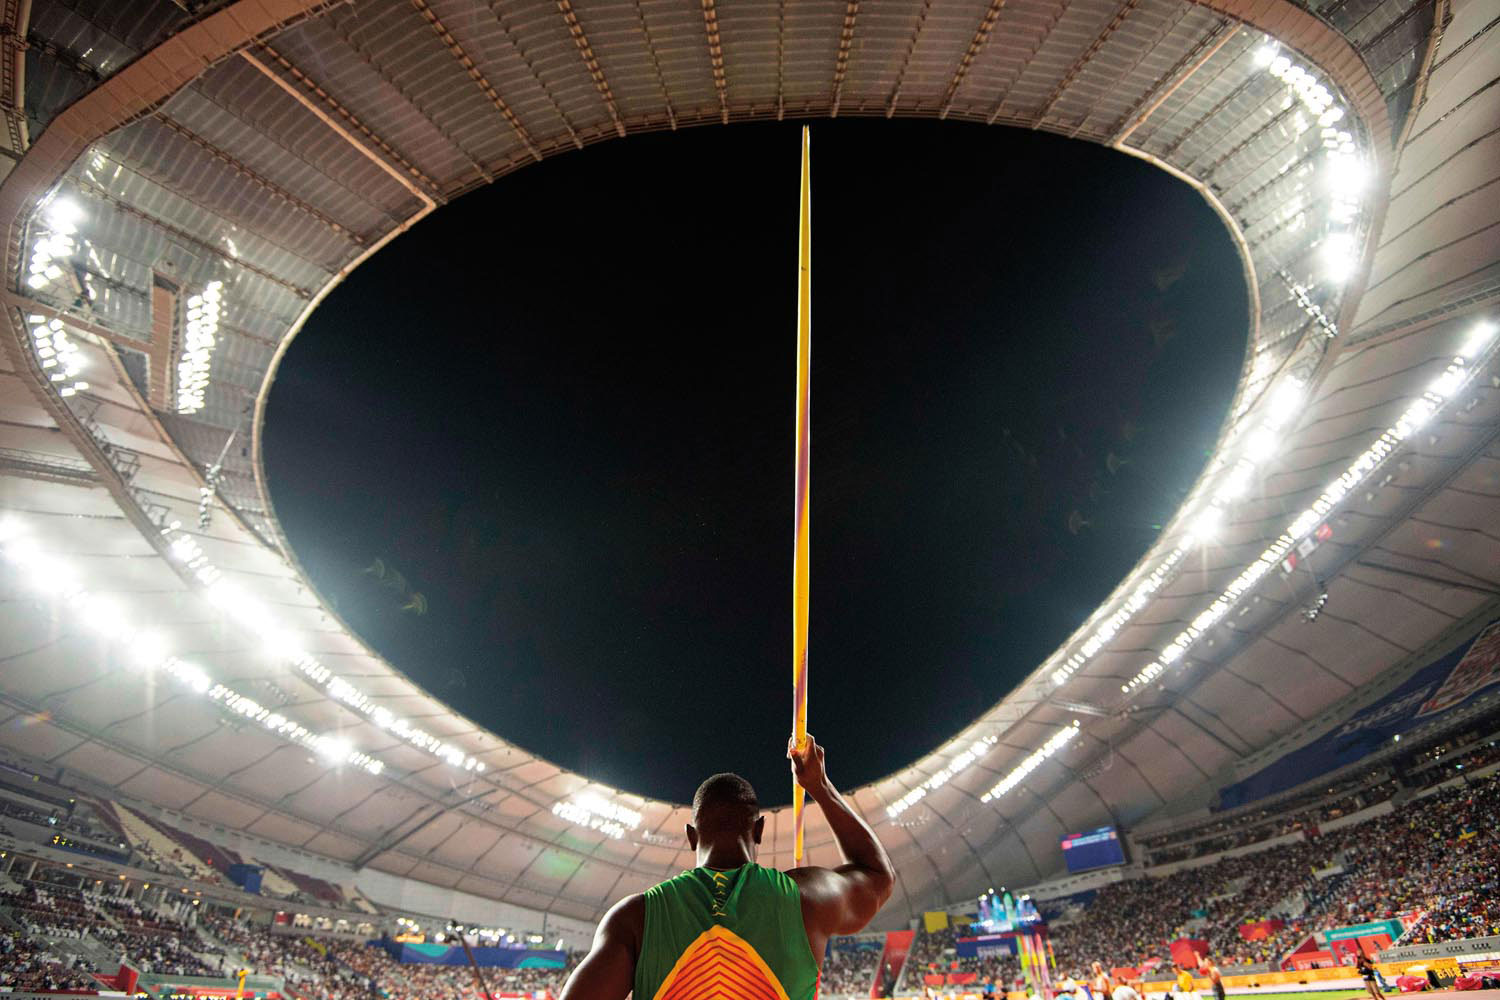 Anderson Peters at the 2019 World Championships in Doha. Photo by DPA/Alamy Stock Photo